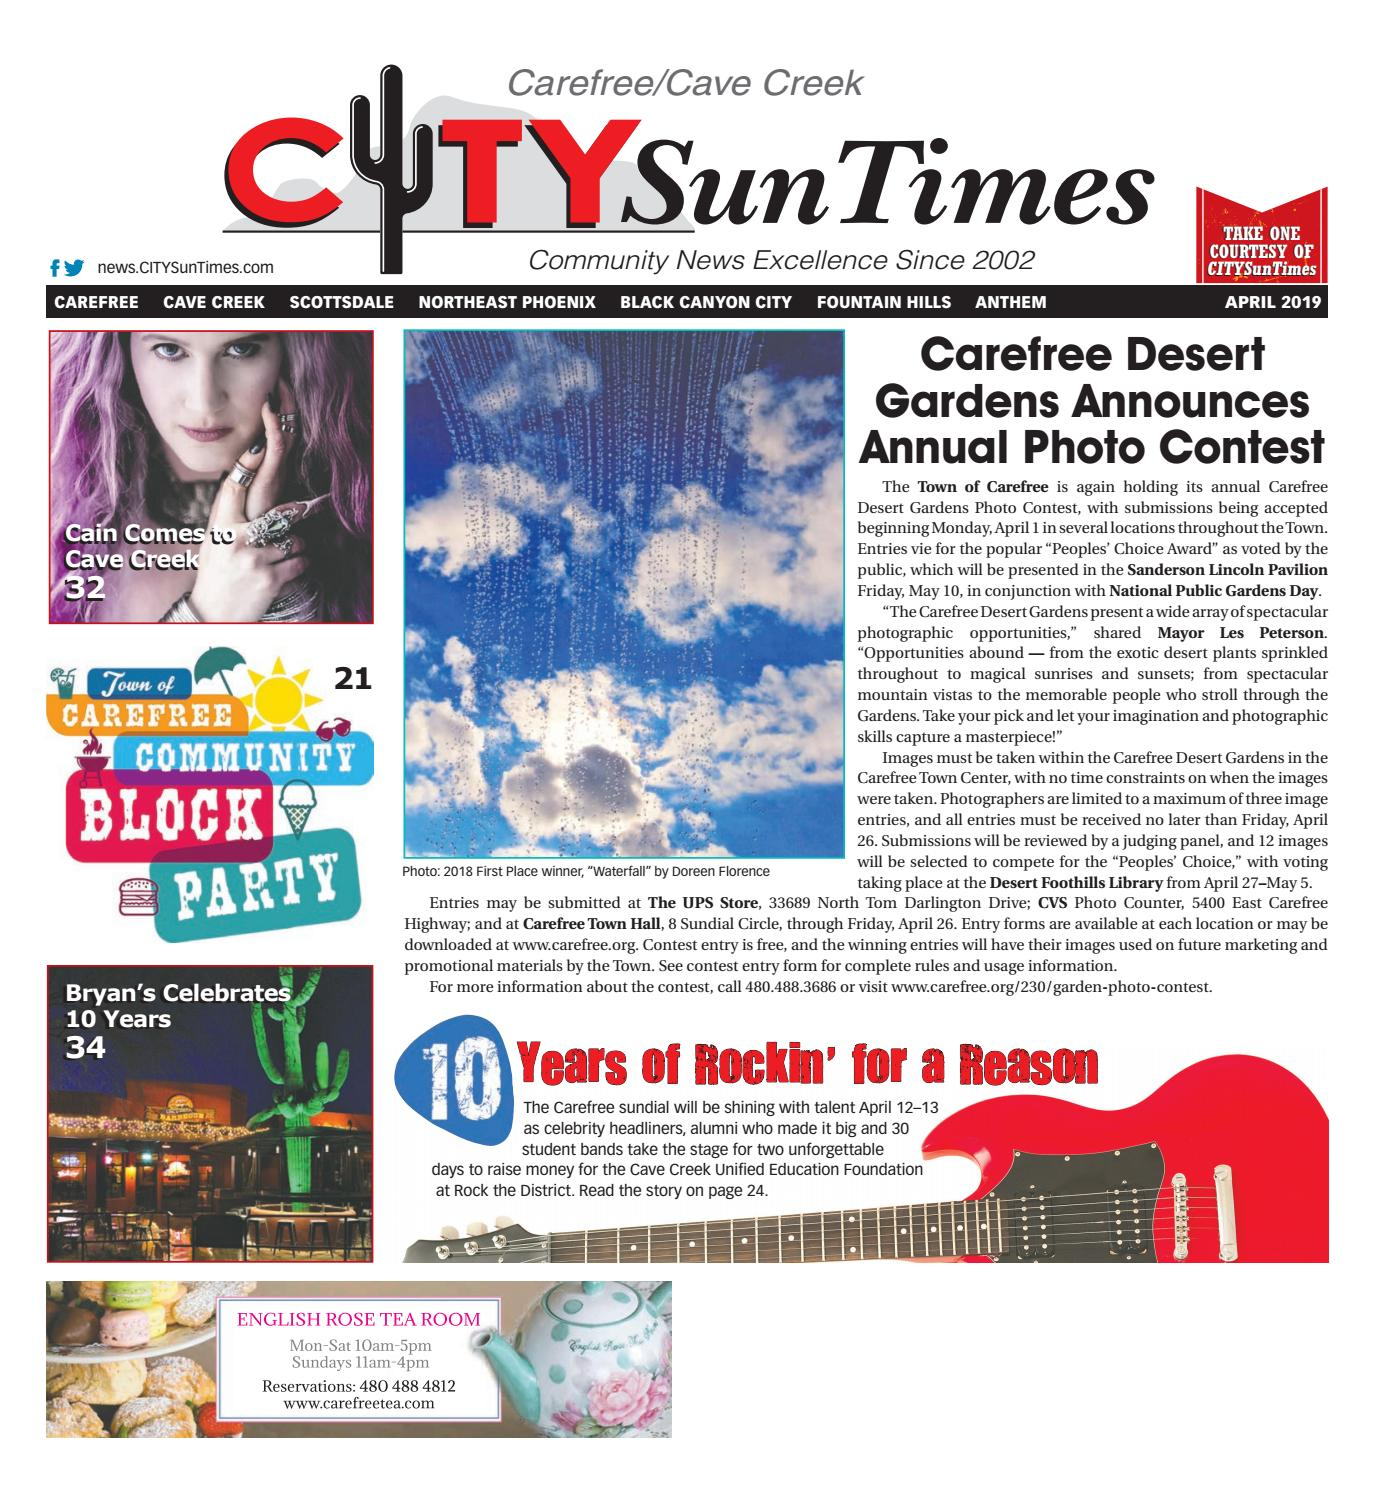 09367ceb6 Carefree Cave Creek April 2019 CITYSunTimes by Jenifer Lee - issuu